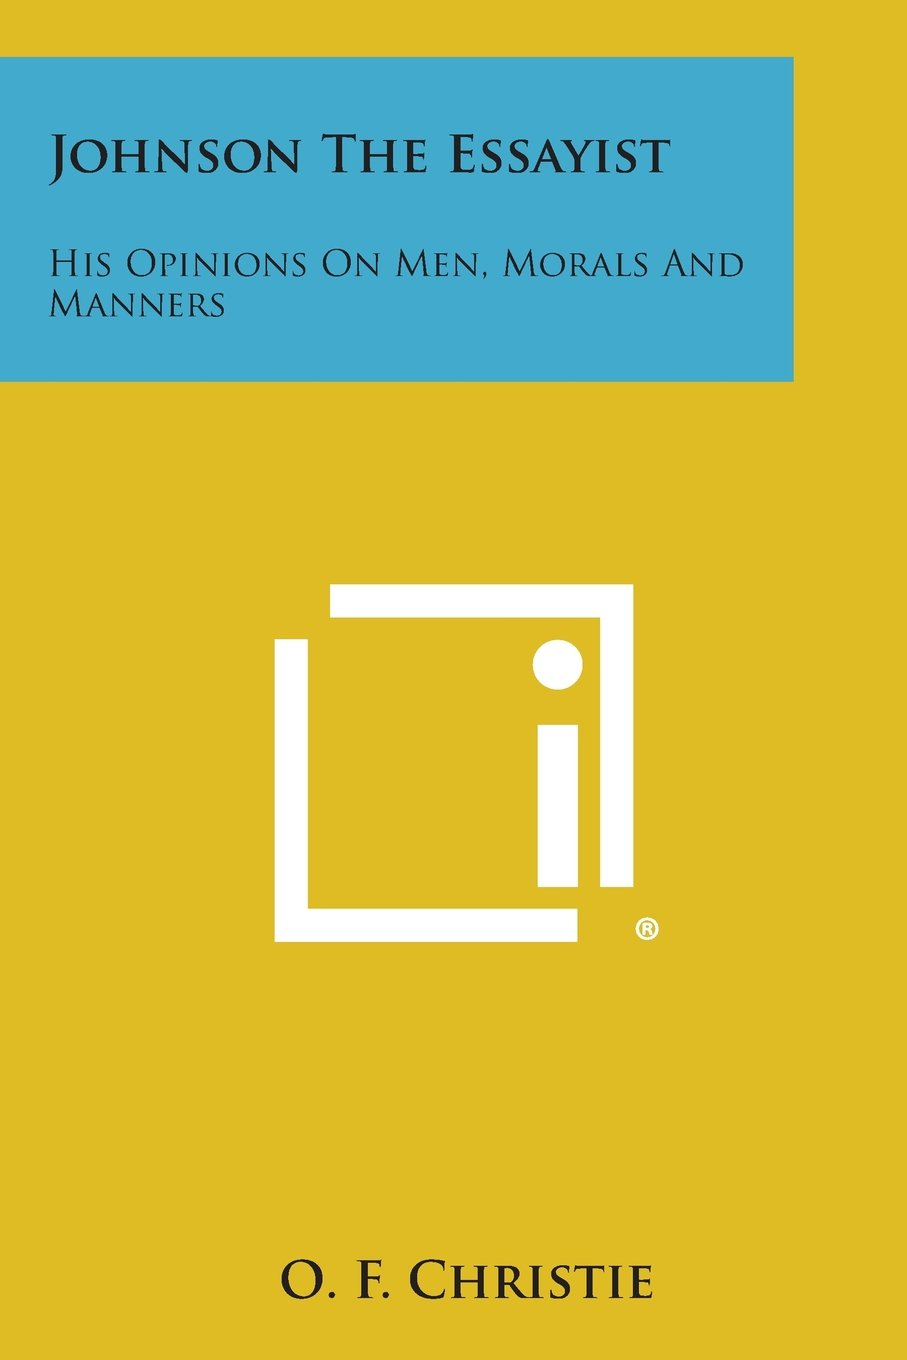 Johnson the Essayist: His Opinions on Men, Morals and Manners pdf epub